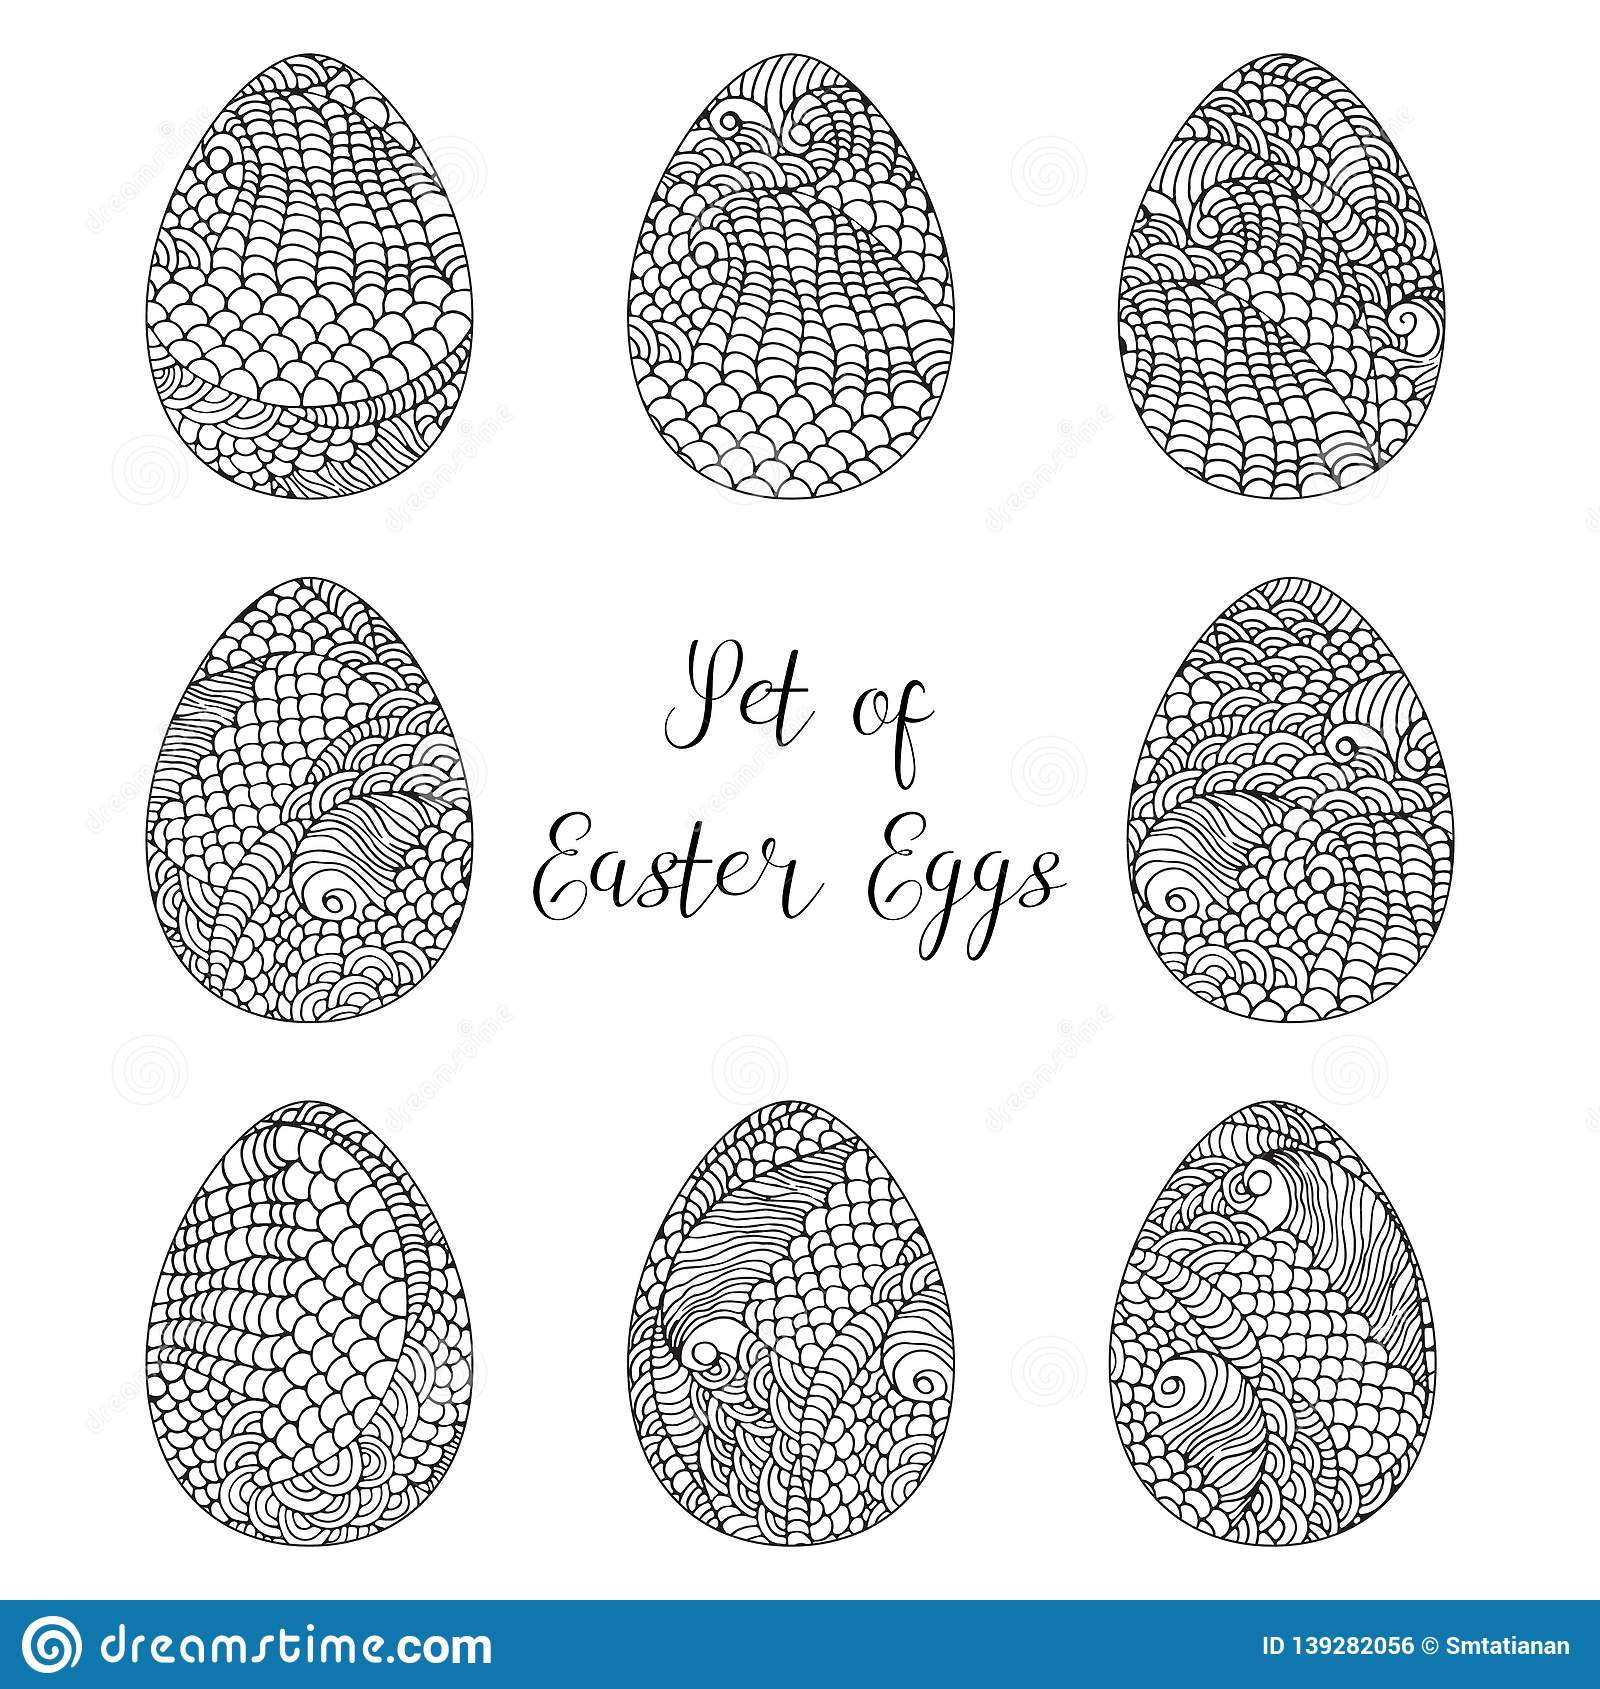 Vector ilustration, set of Easter eggs with hand drawn doodle patterns isolated on white. Coloring black and white book